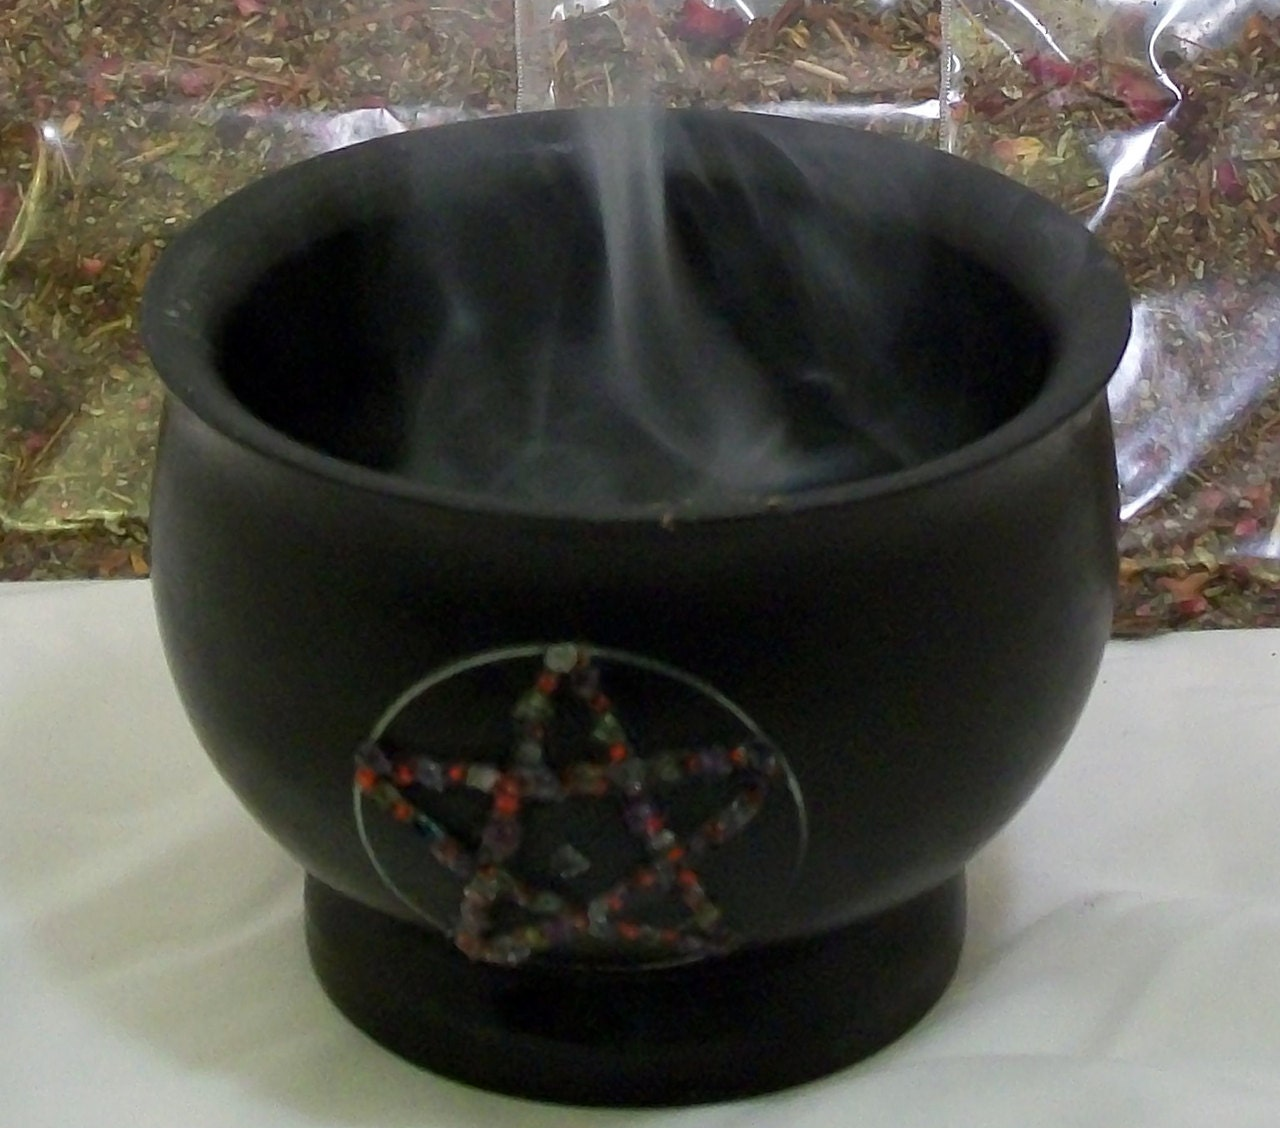 Frankincense & Myrrh Granular Incense Resin Blend